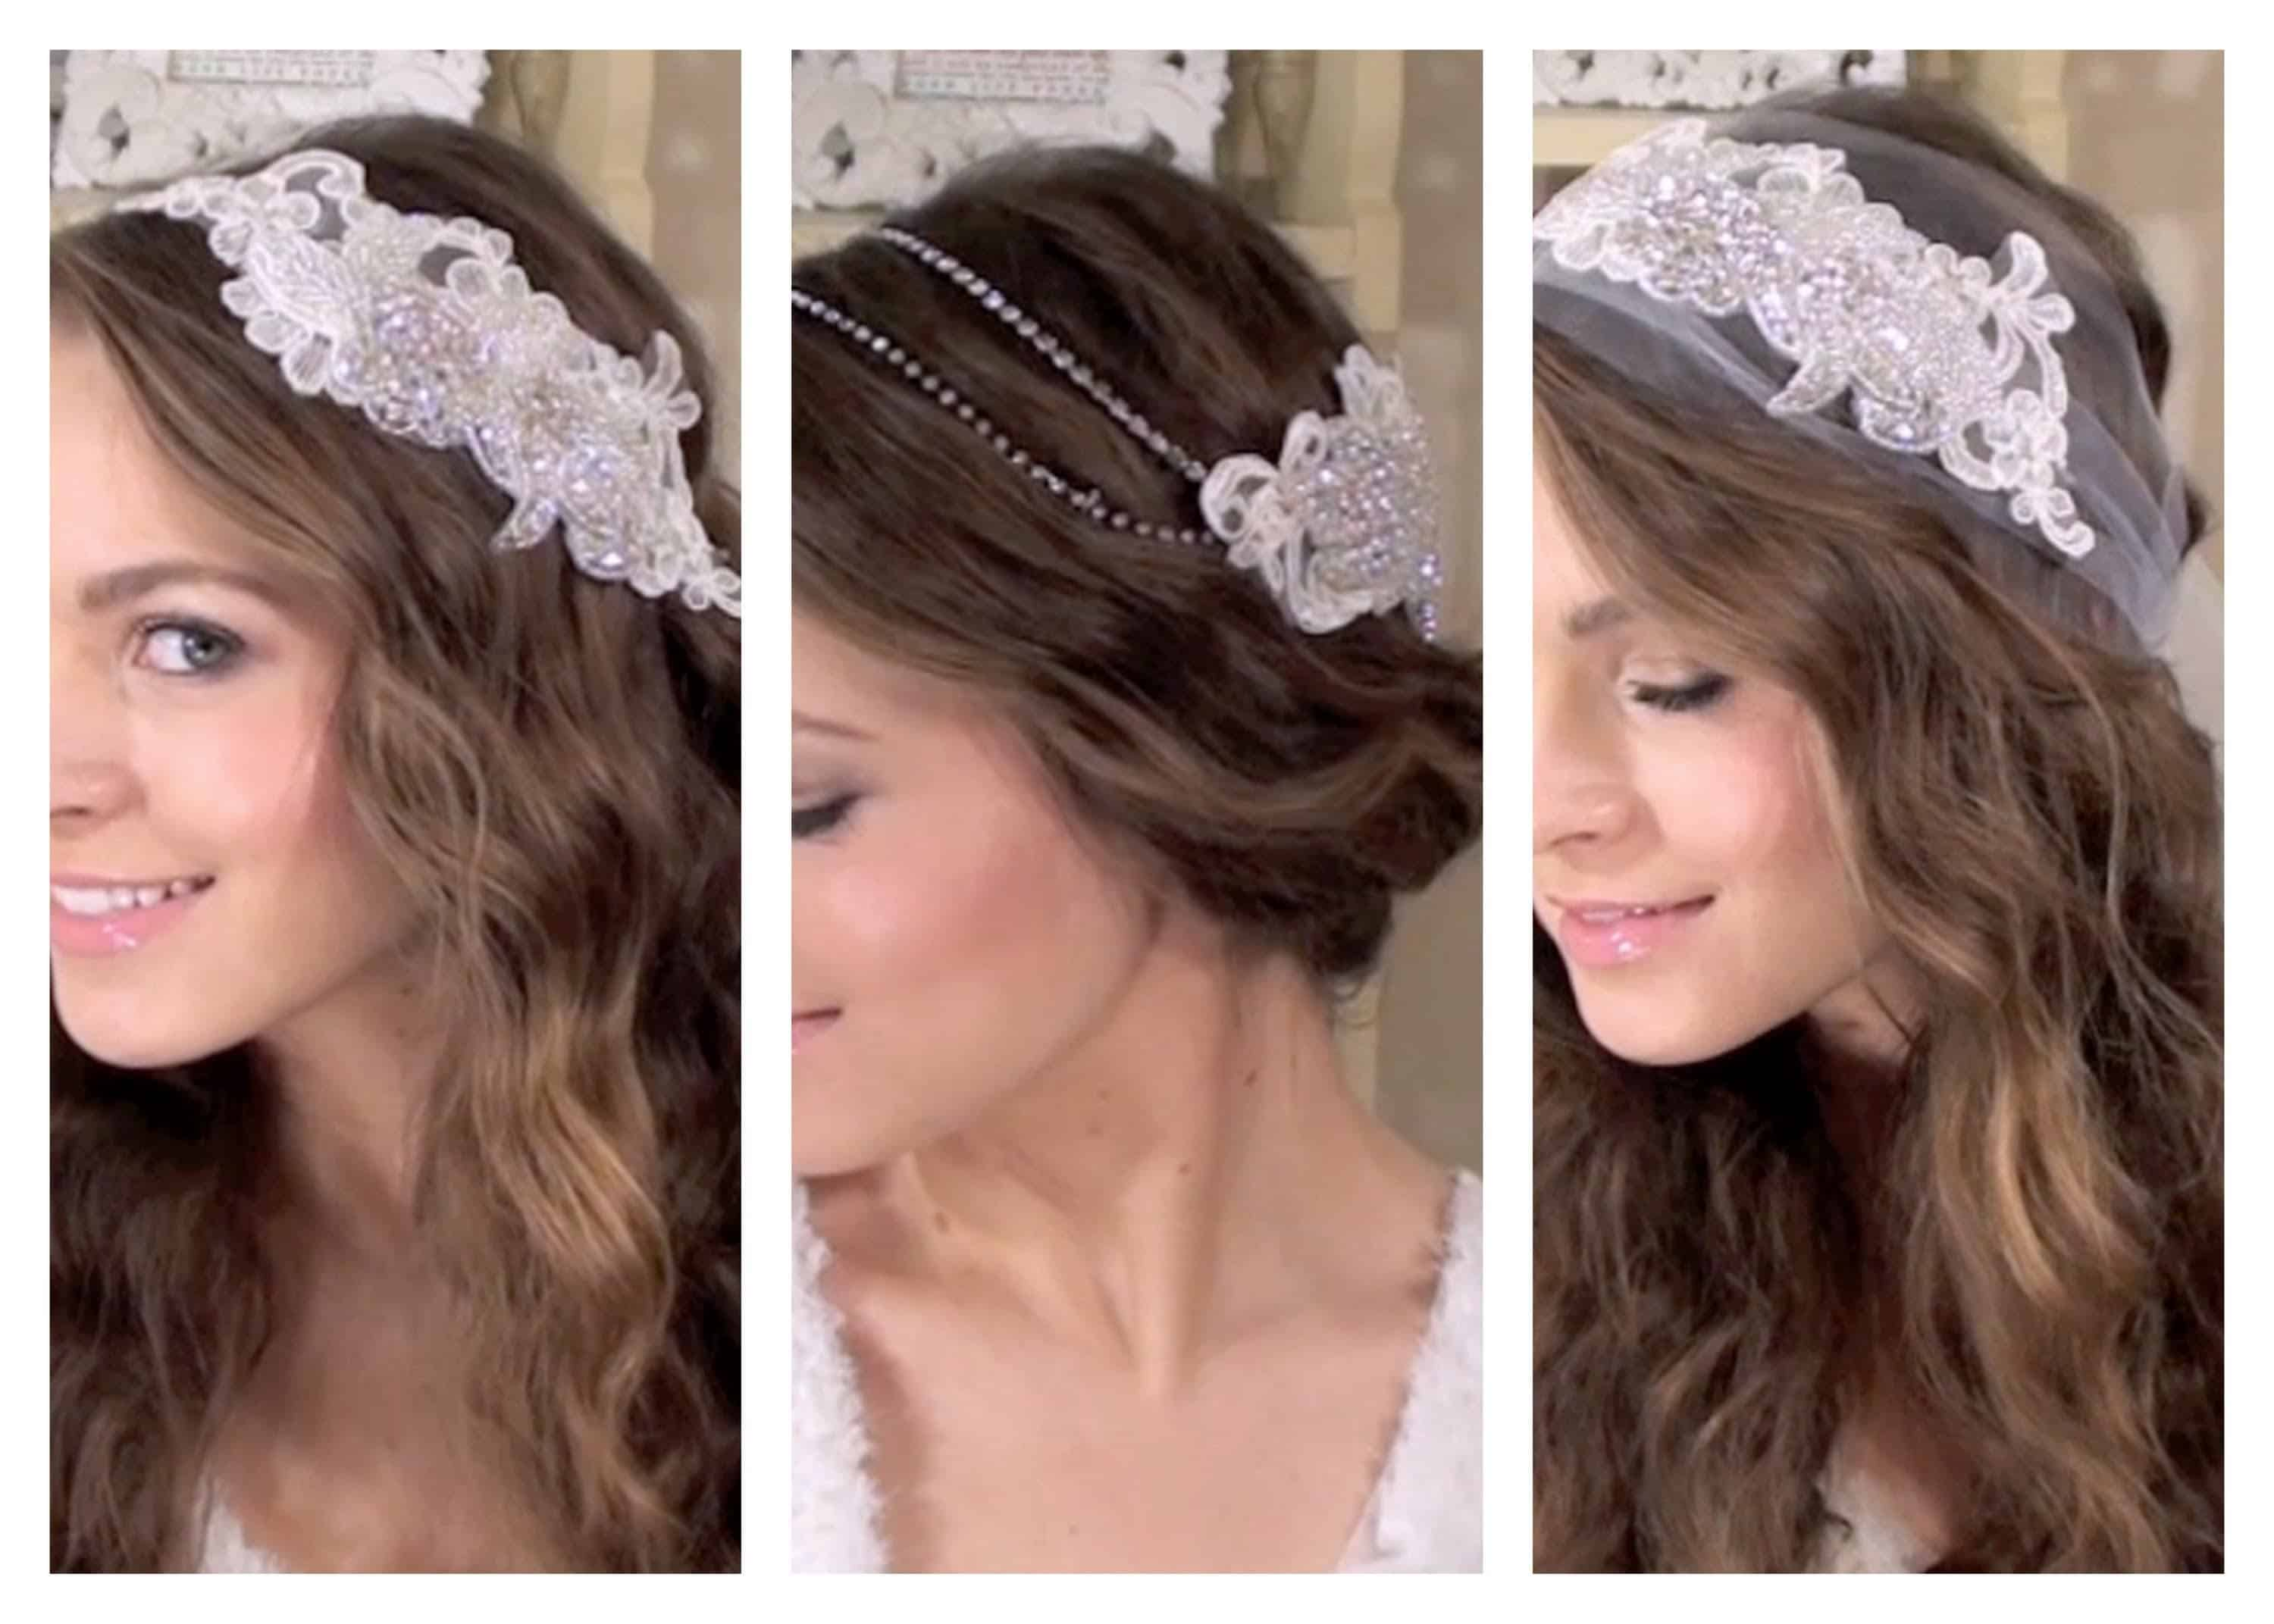 Boho bridal applique hair accessories